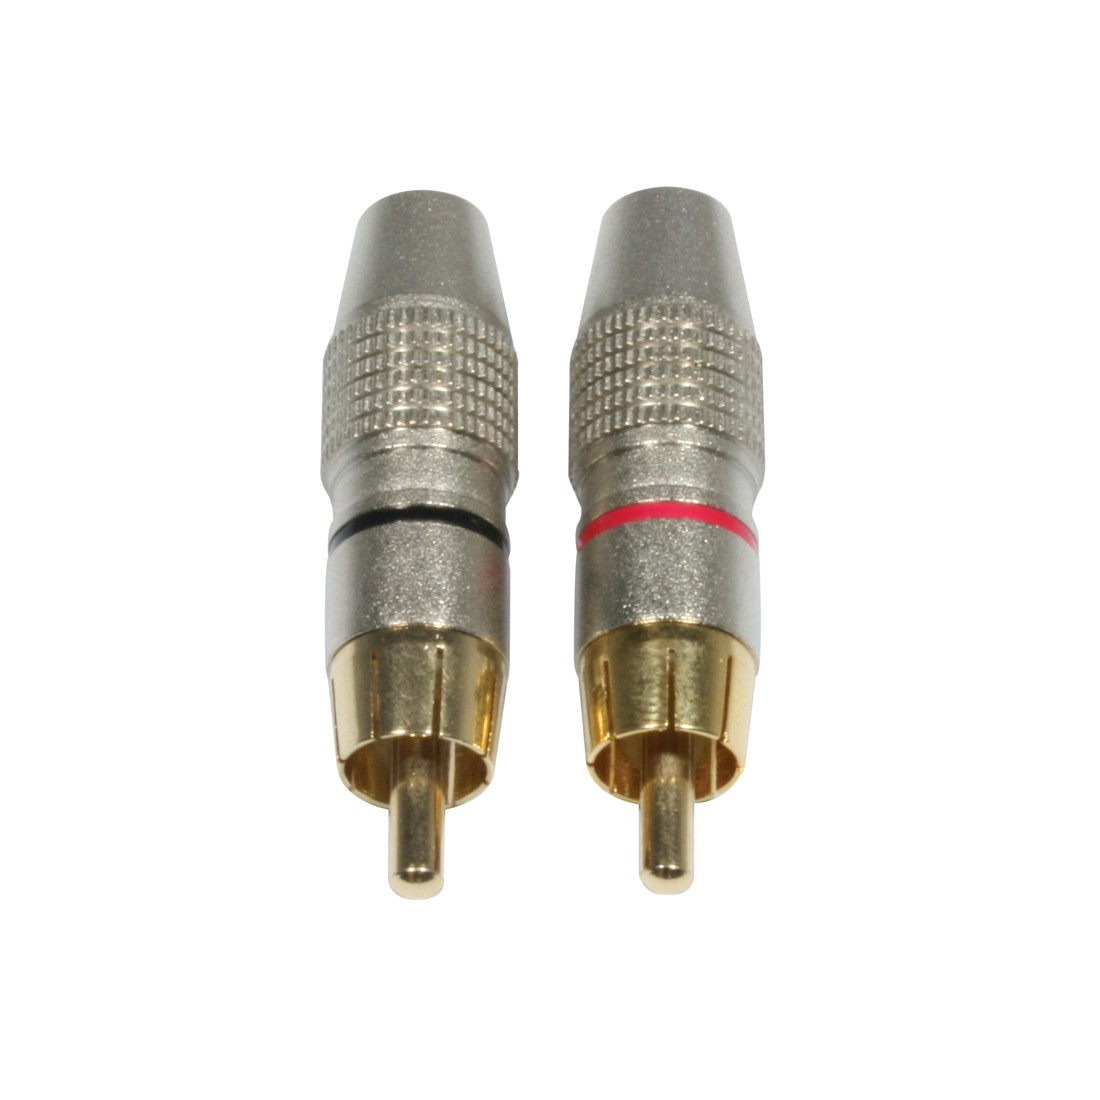 Ac-c-rmg  Set Rca Cinch Plug Male Gold - Cable Connectors - Connectors Audio  U0026 Light